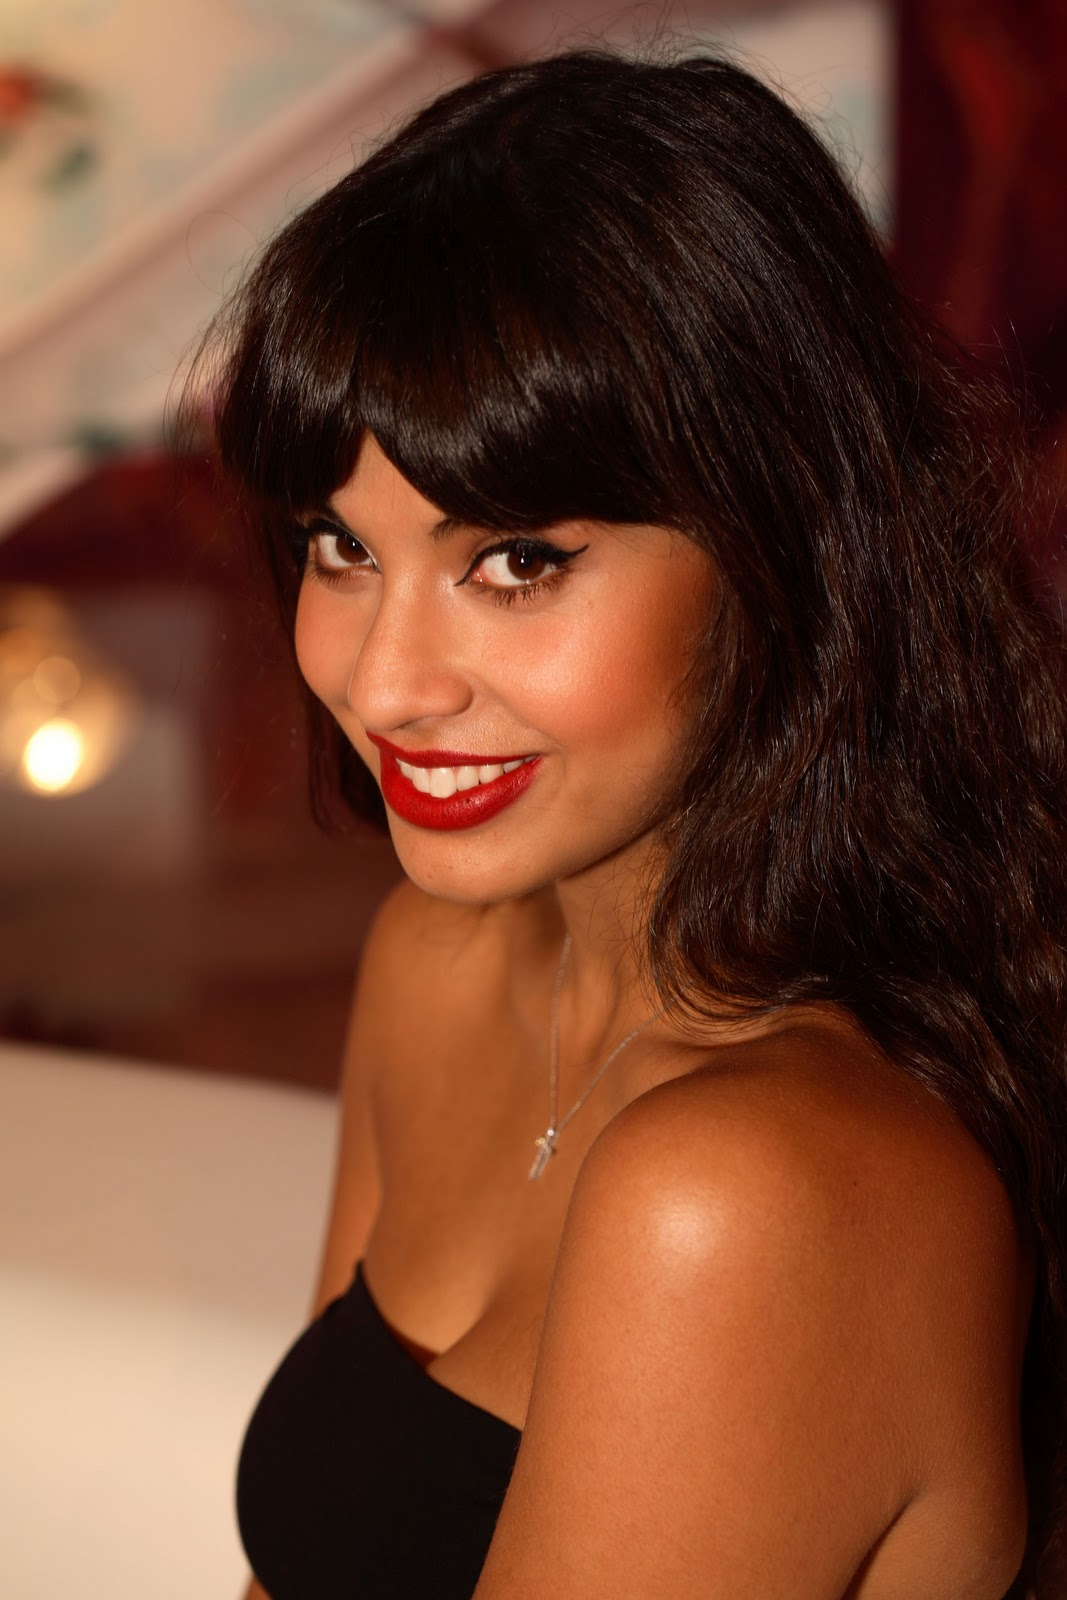 Jameela Jamil Calls For Body Confidence Education To Be On: Have You Ever Seen Her ???